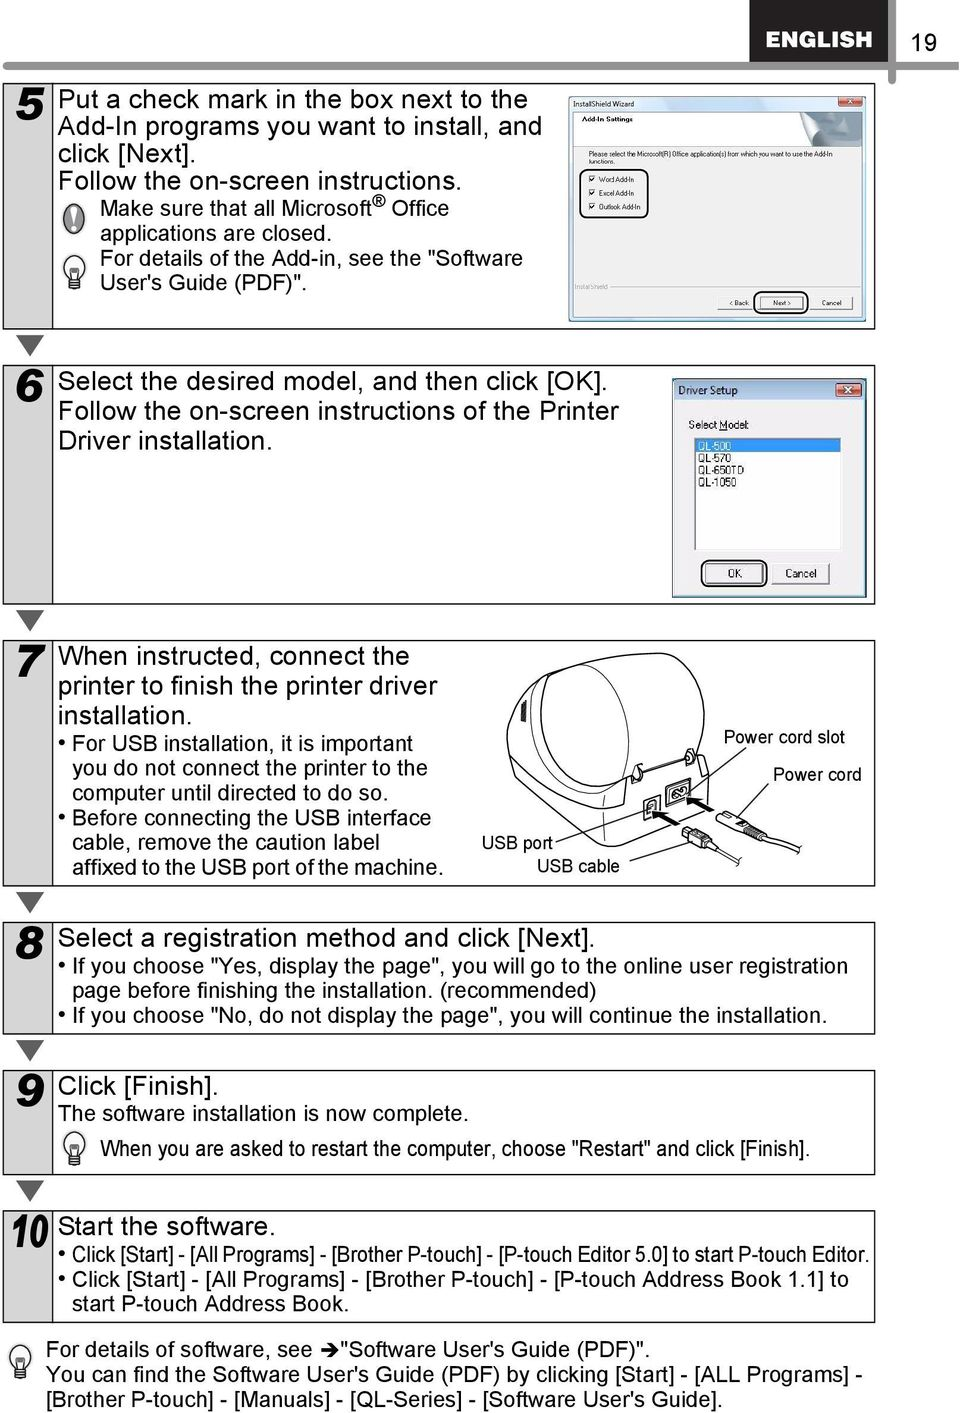 7 When instructed, connect the printer to finish the printer driver installation. For USB installation, it is important you do not connect the printer to the computer until directed to do so.